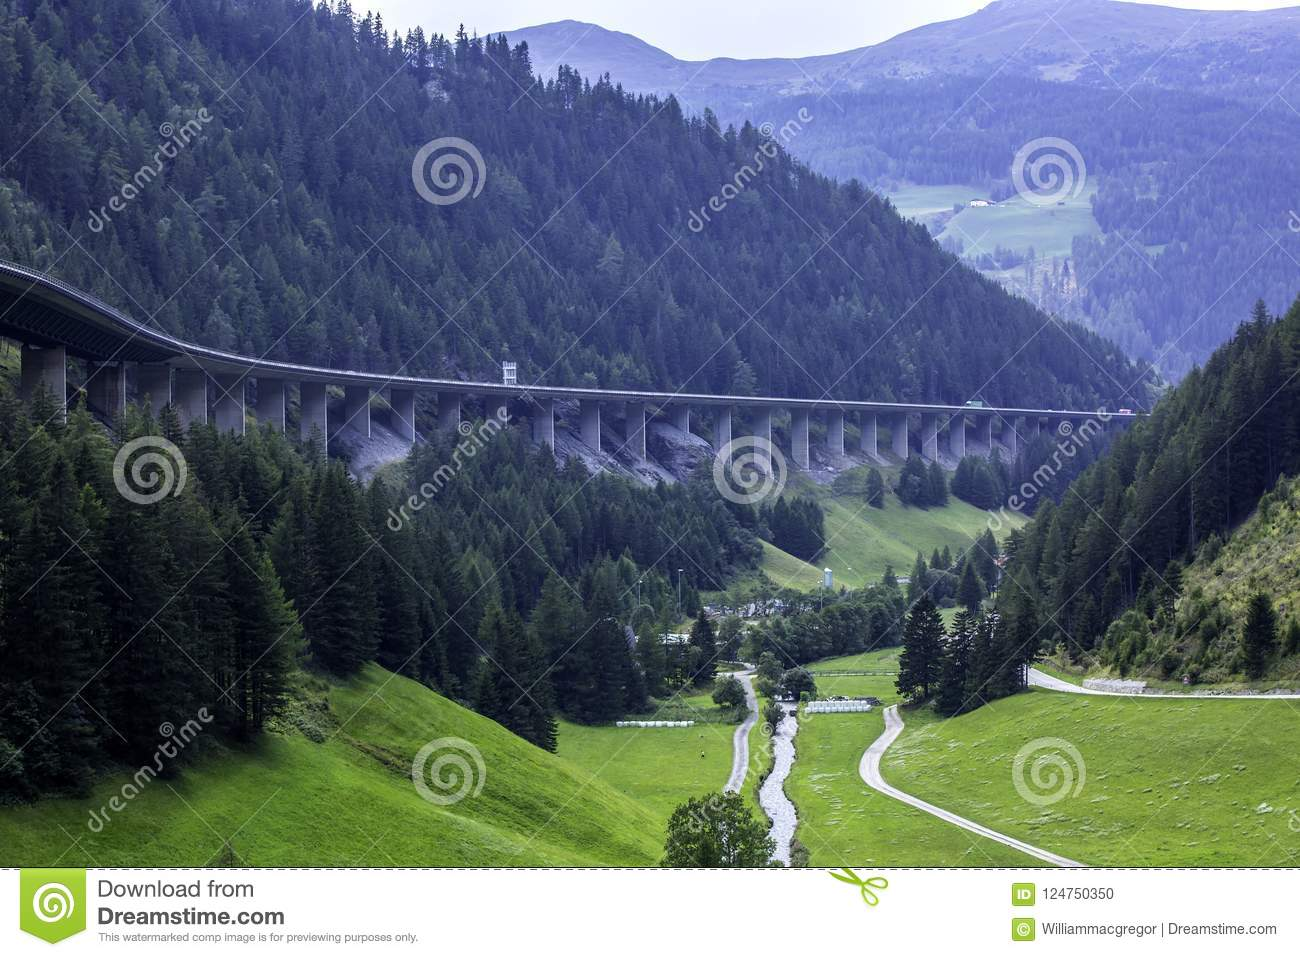 The Brenner Pass Autobahn